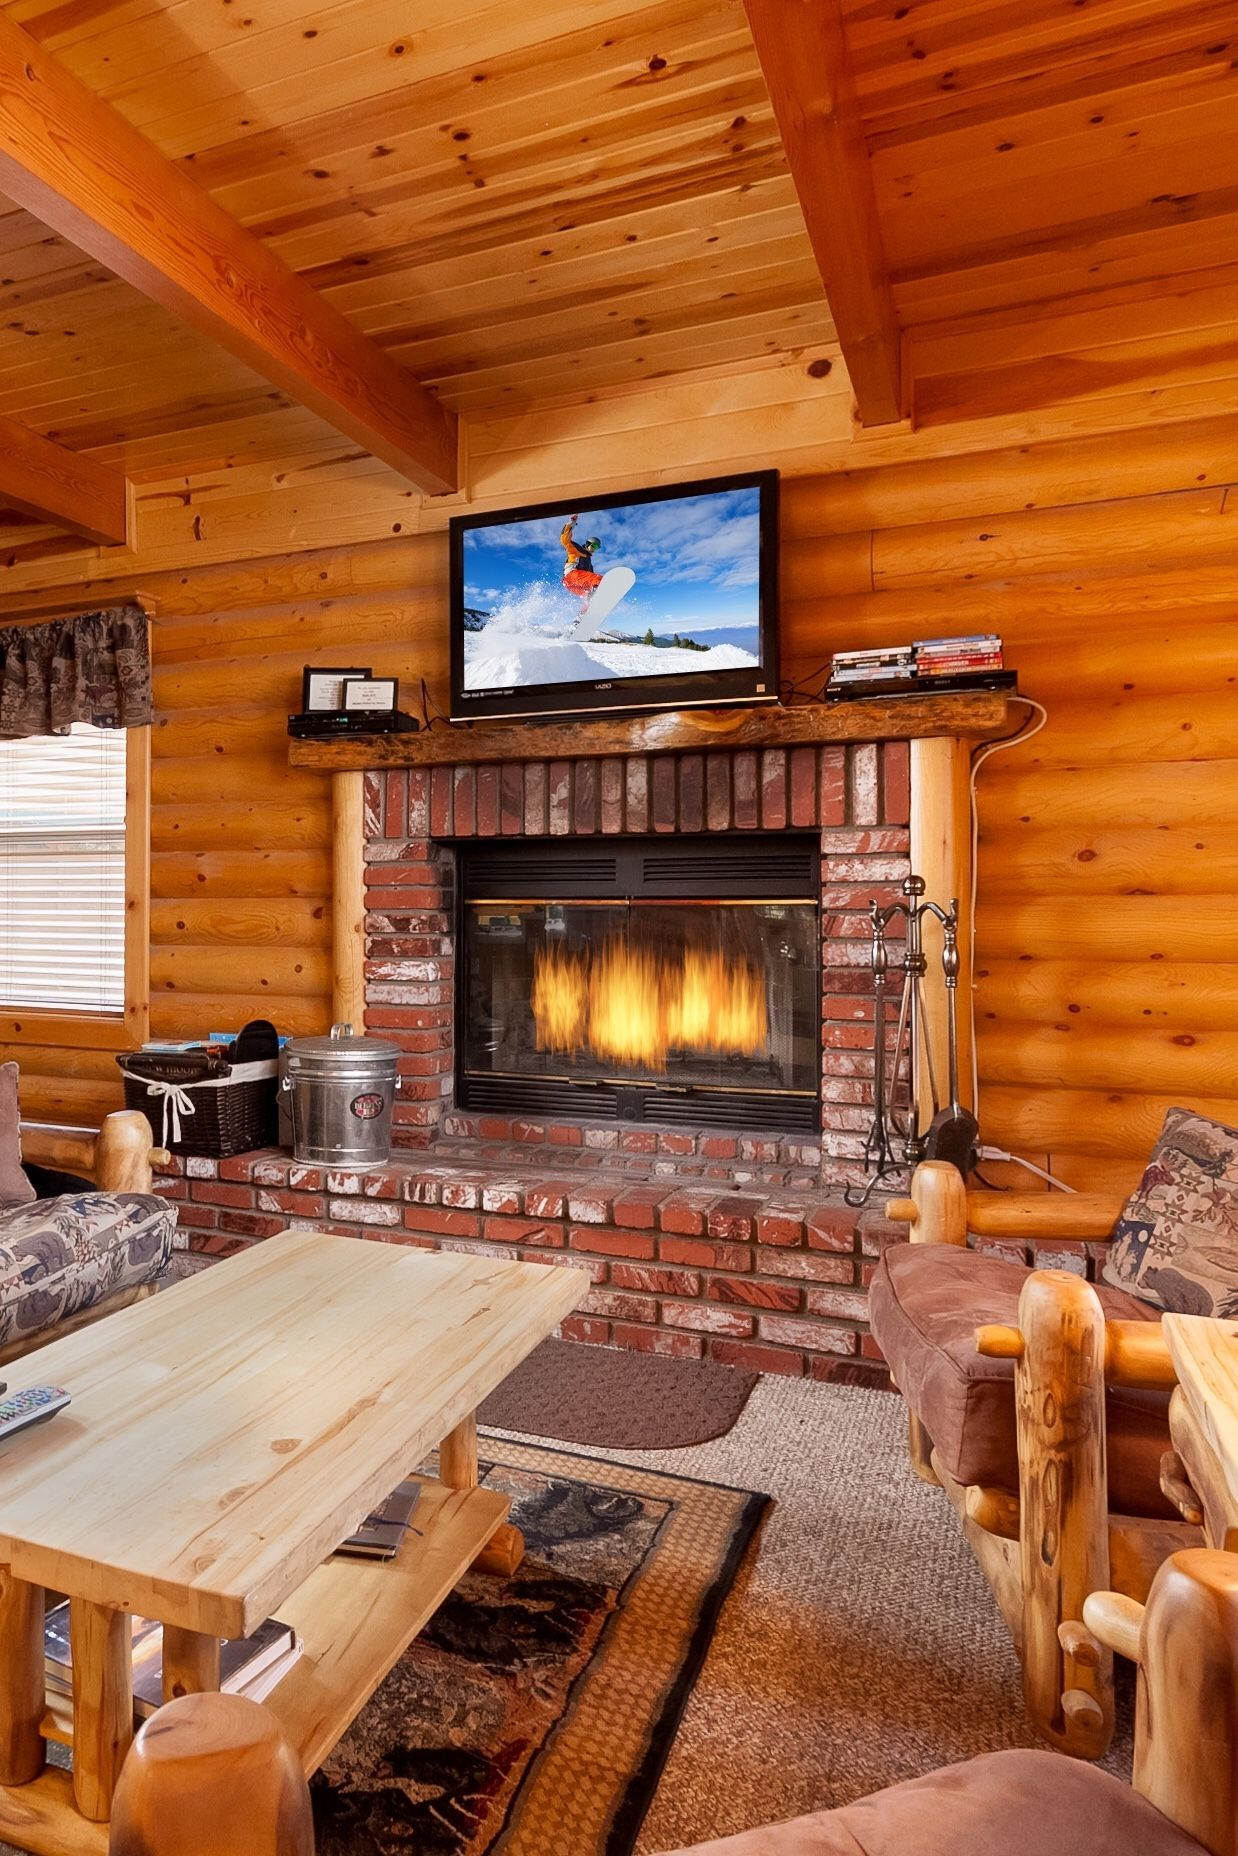 Warm ambiance with creature comforts! Log cabin coziness